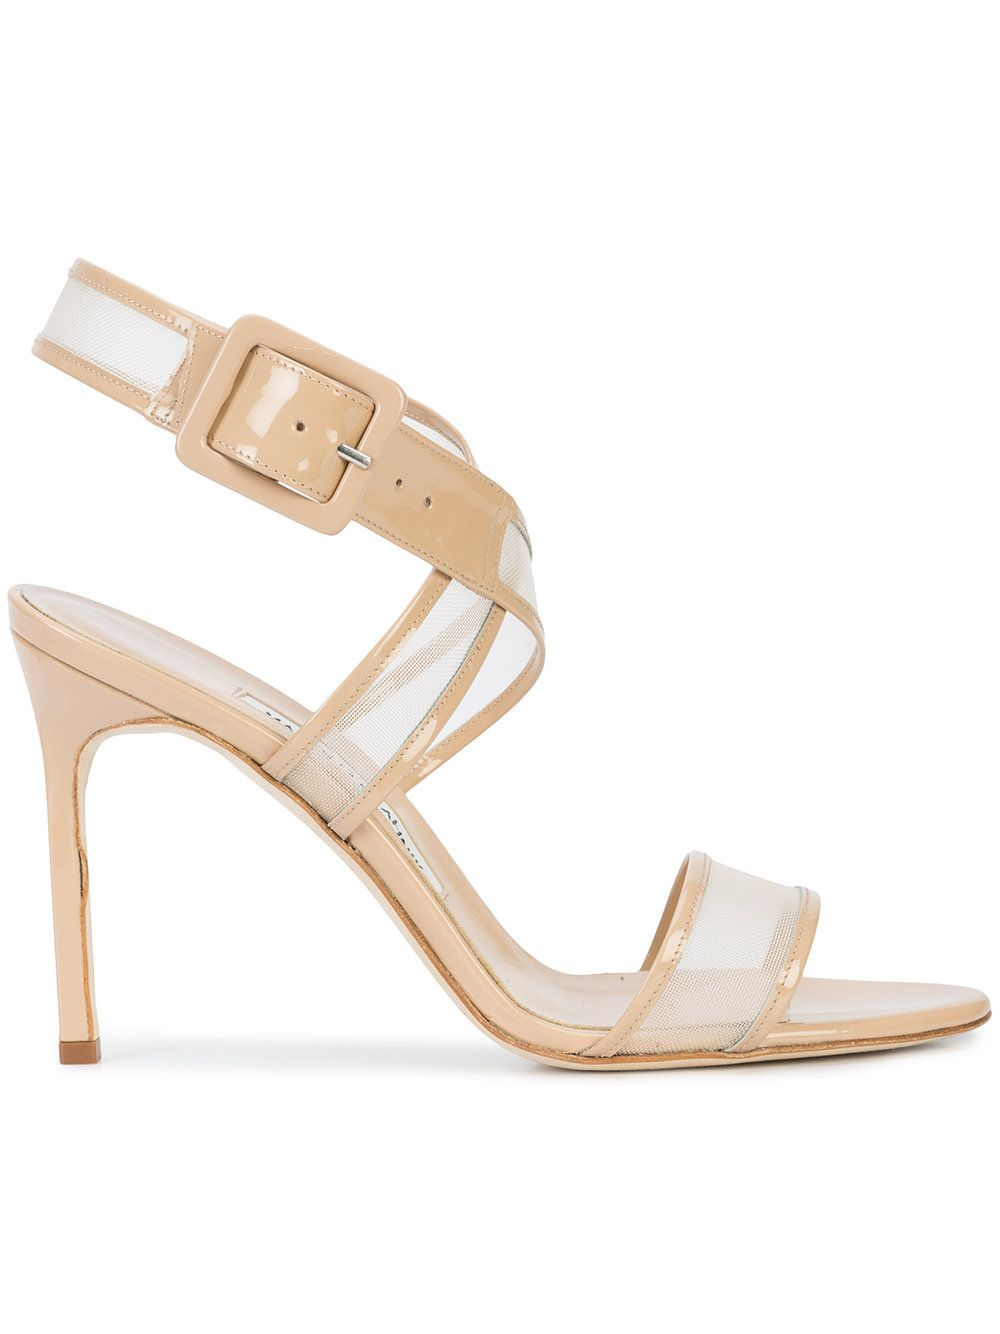 de212d1d667 MANOLO BLAHNIK NUDE   NEUTRALS.  manoloblahnik  shoes